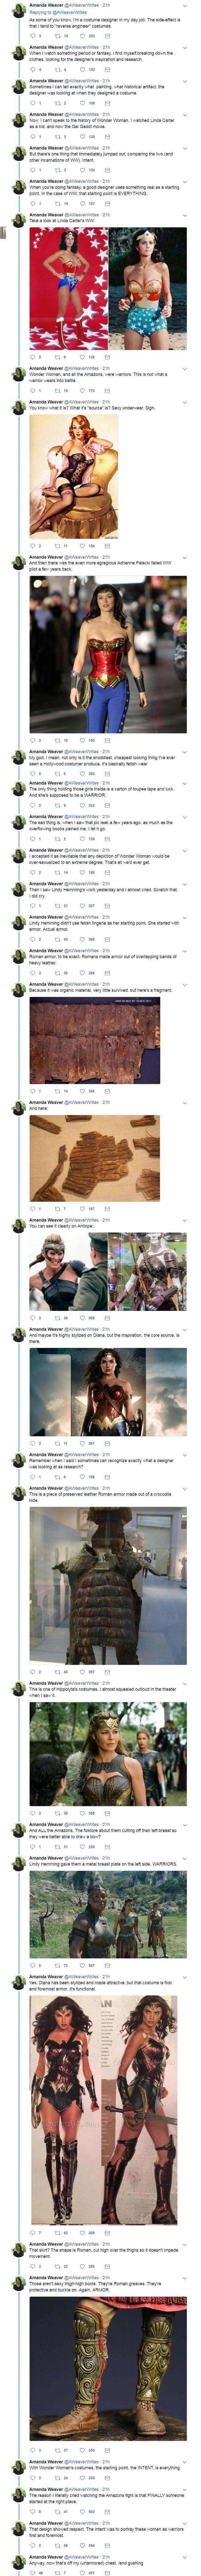 TL;DR - The new Wonder Woman movie has ACTUAL ARMOUR IN IT THAT IS FUNCTIONAL, unlike the previous Wonder Woman clothing, which was purely meant to sexualize her.